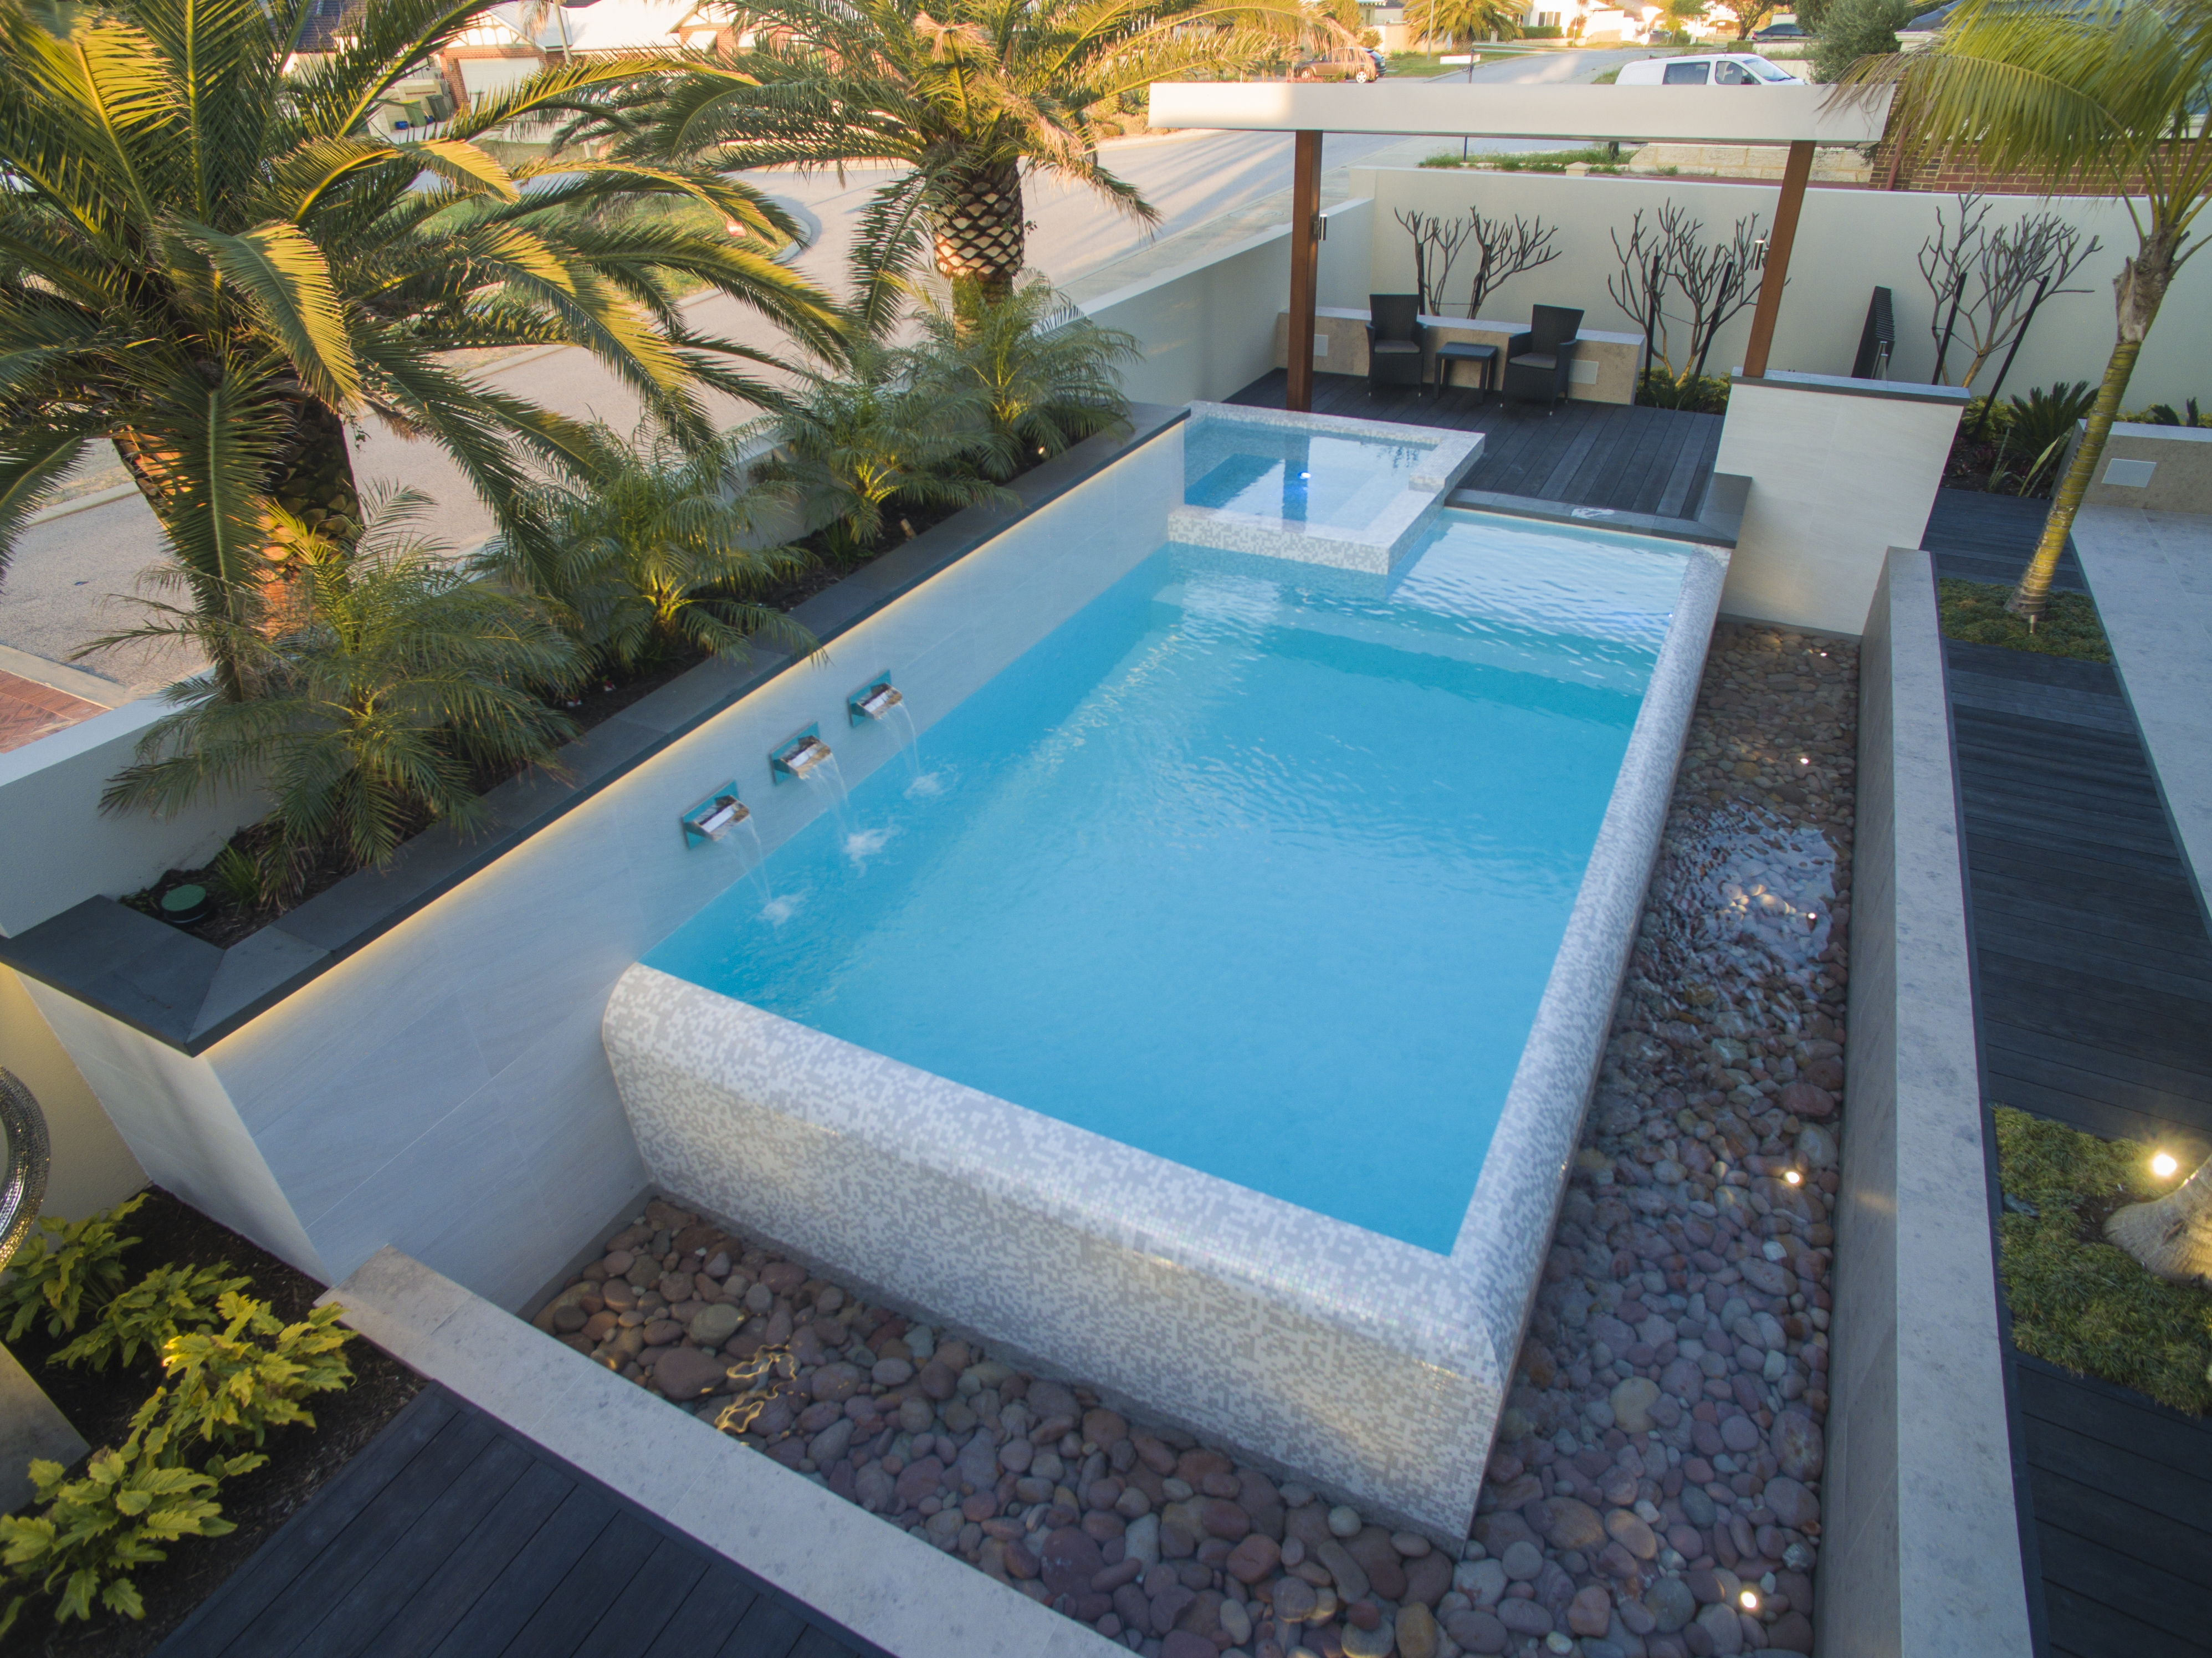 Pools By Design Sept 2016 002-5